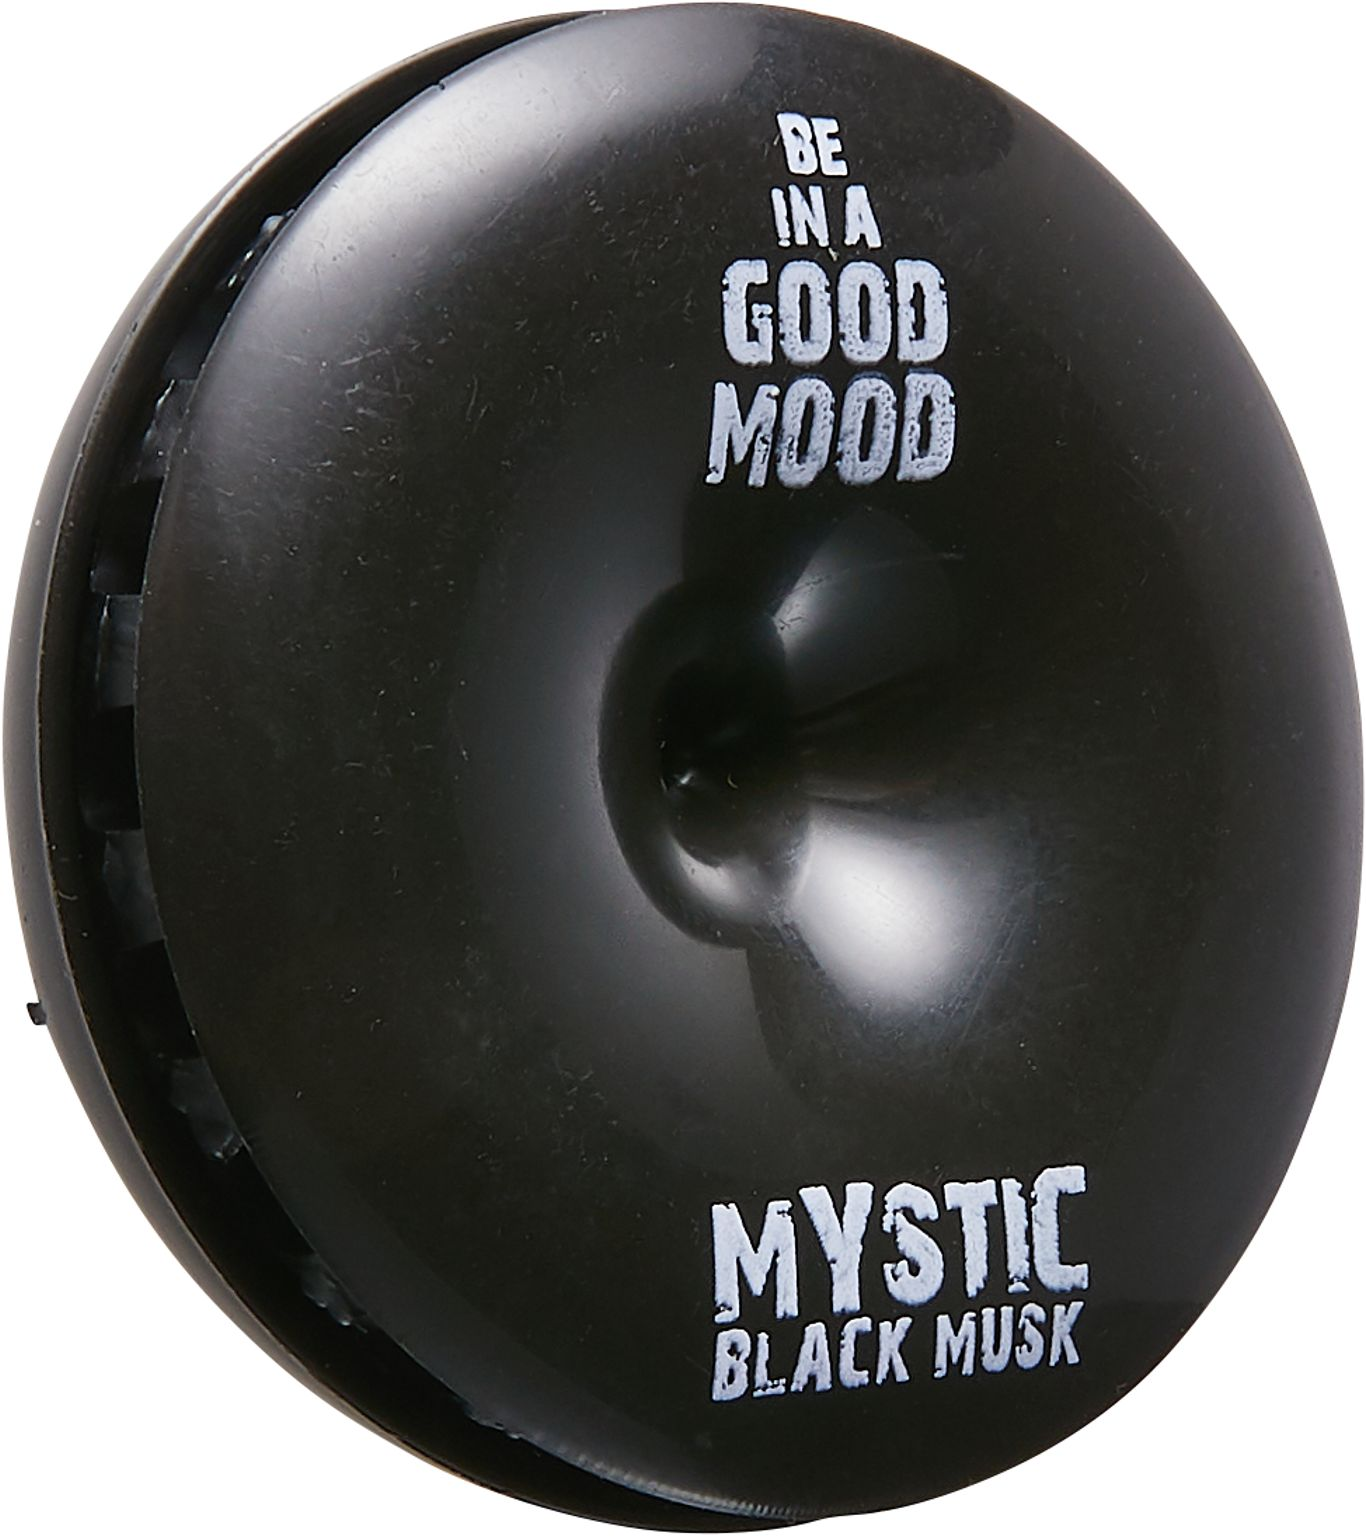 Image of BE IN A GOOD MOOD Autoduft Mystic Black Musk